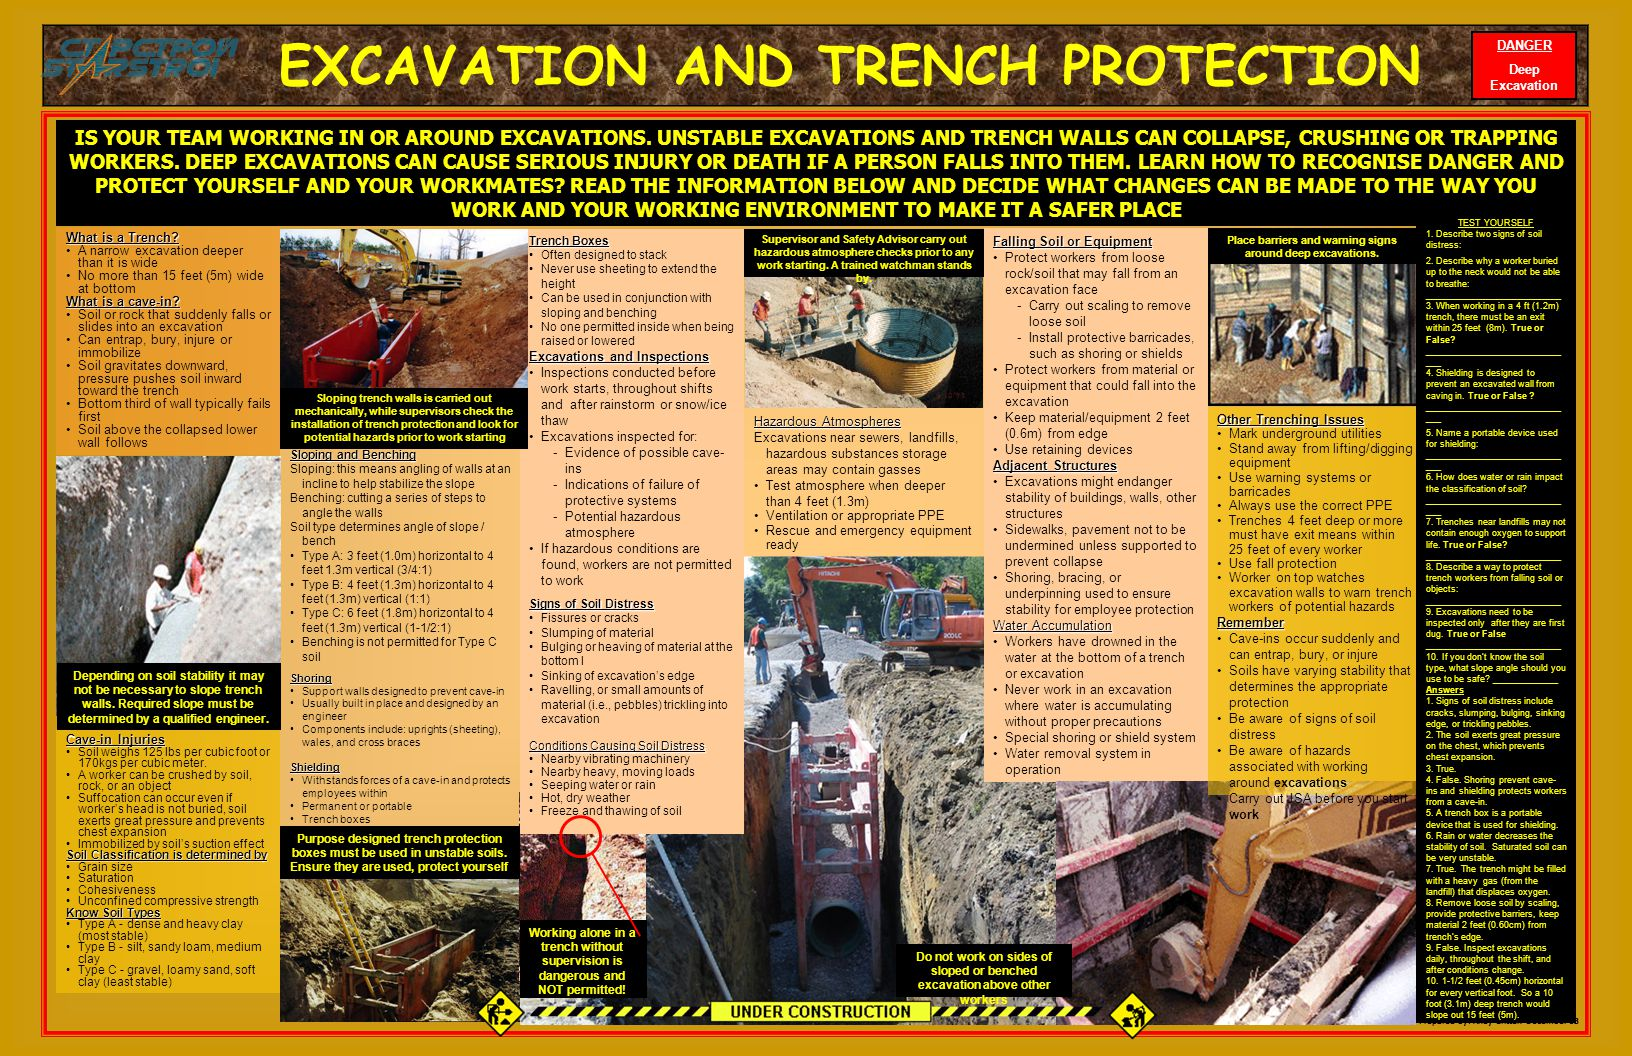 EXCAVATION AND TRENCH PROTECTION